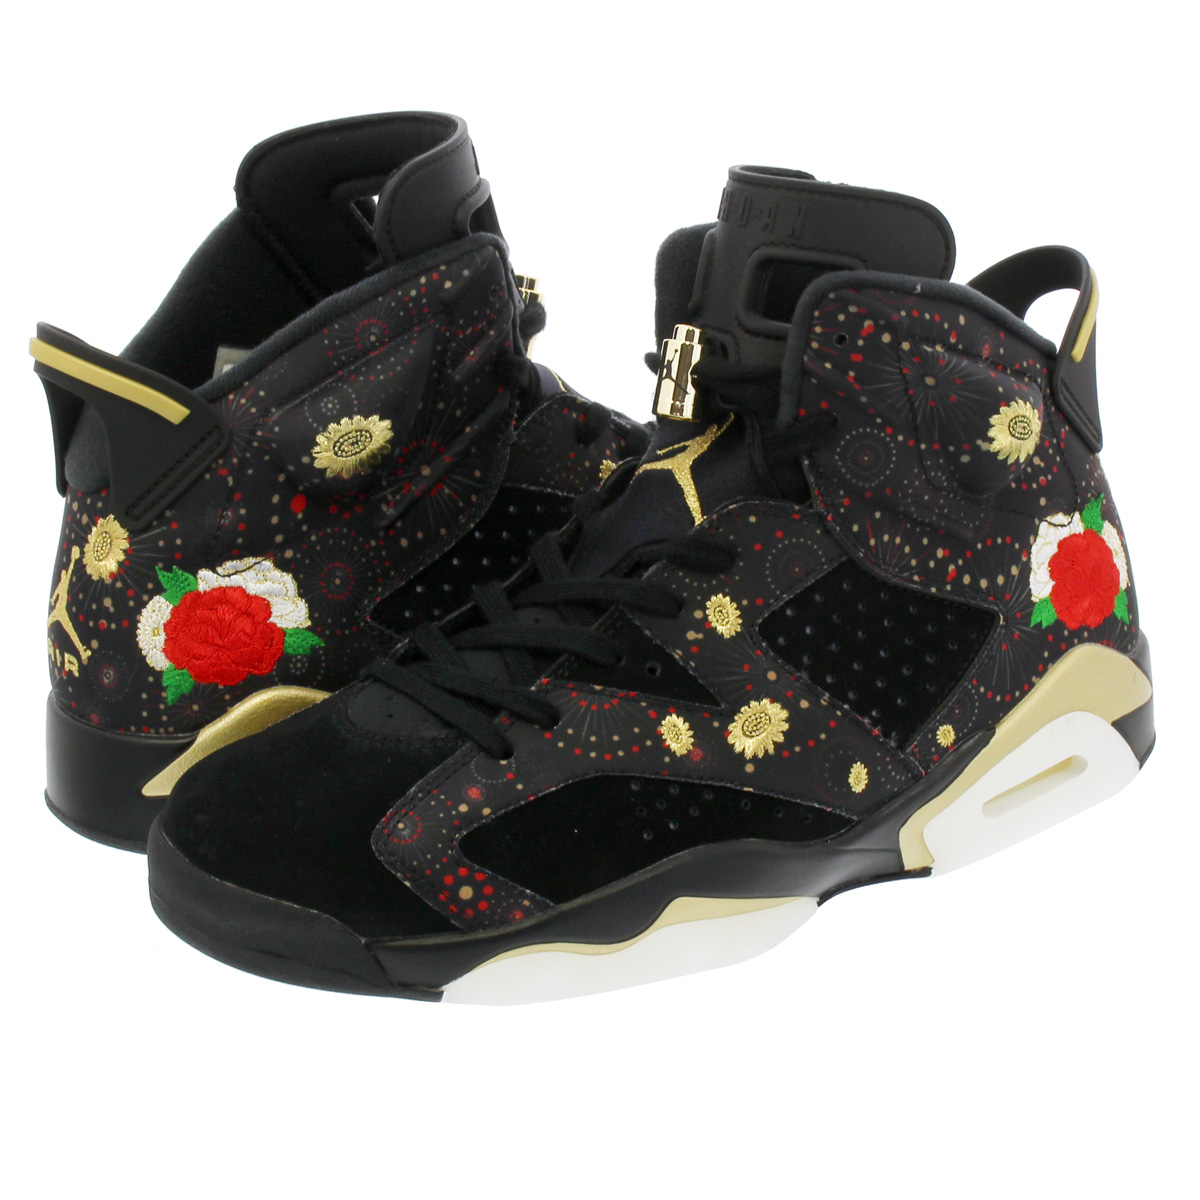 2e947e54f2f NIKE AIR JORDAN 6 RETRO CNY Nike Air Jordan 6 nostalgic CNY BLACK MULTI  COLOR SUMMIT WHITE METALLIC GOLD